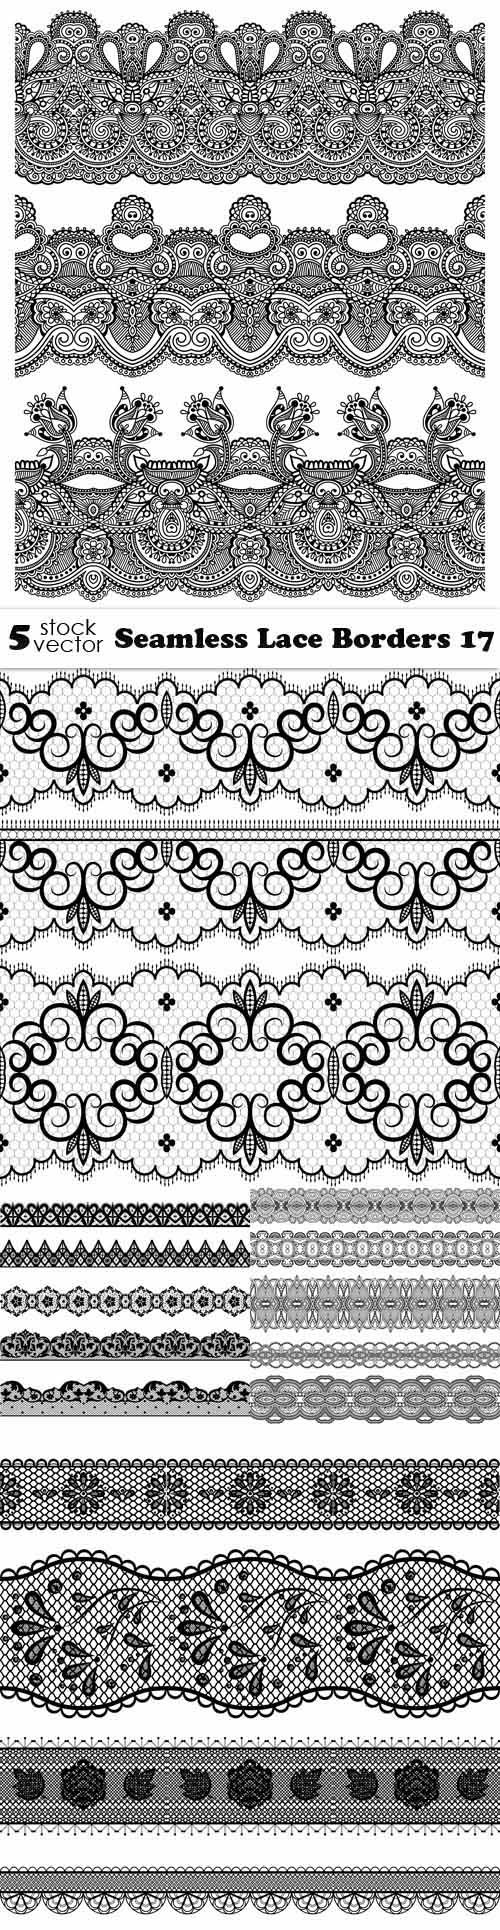 Vectors - Seamless Lace Borders 17